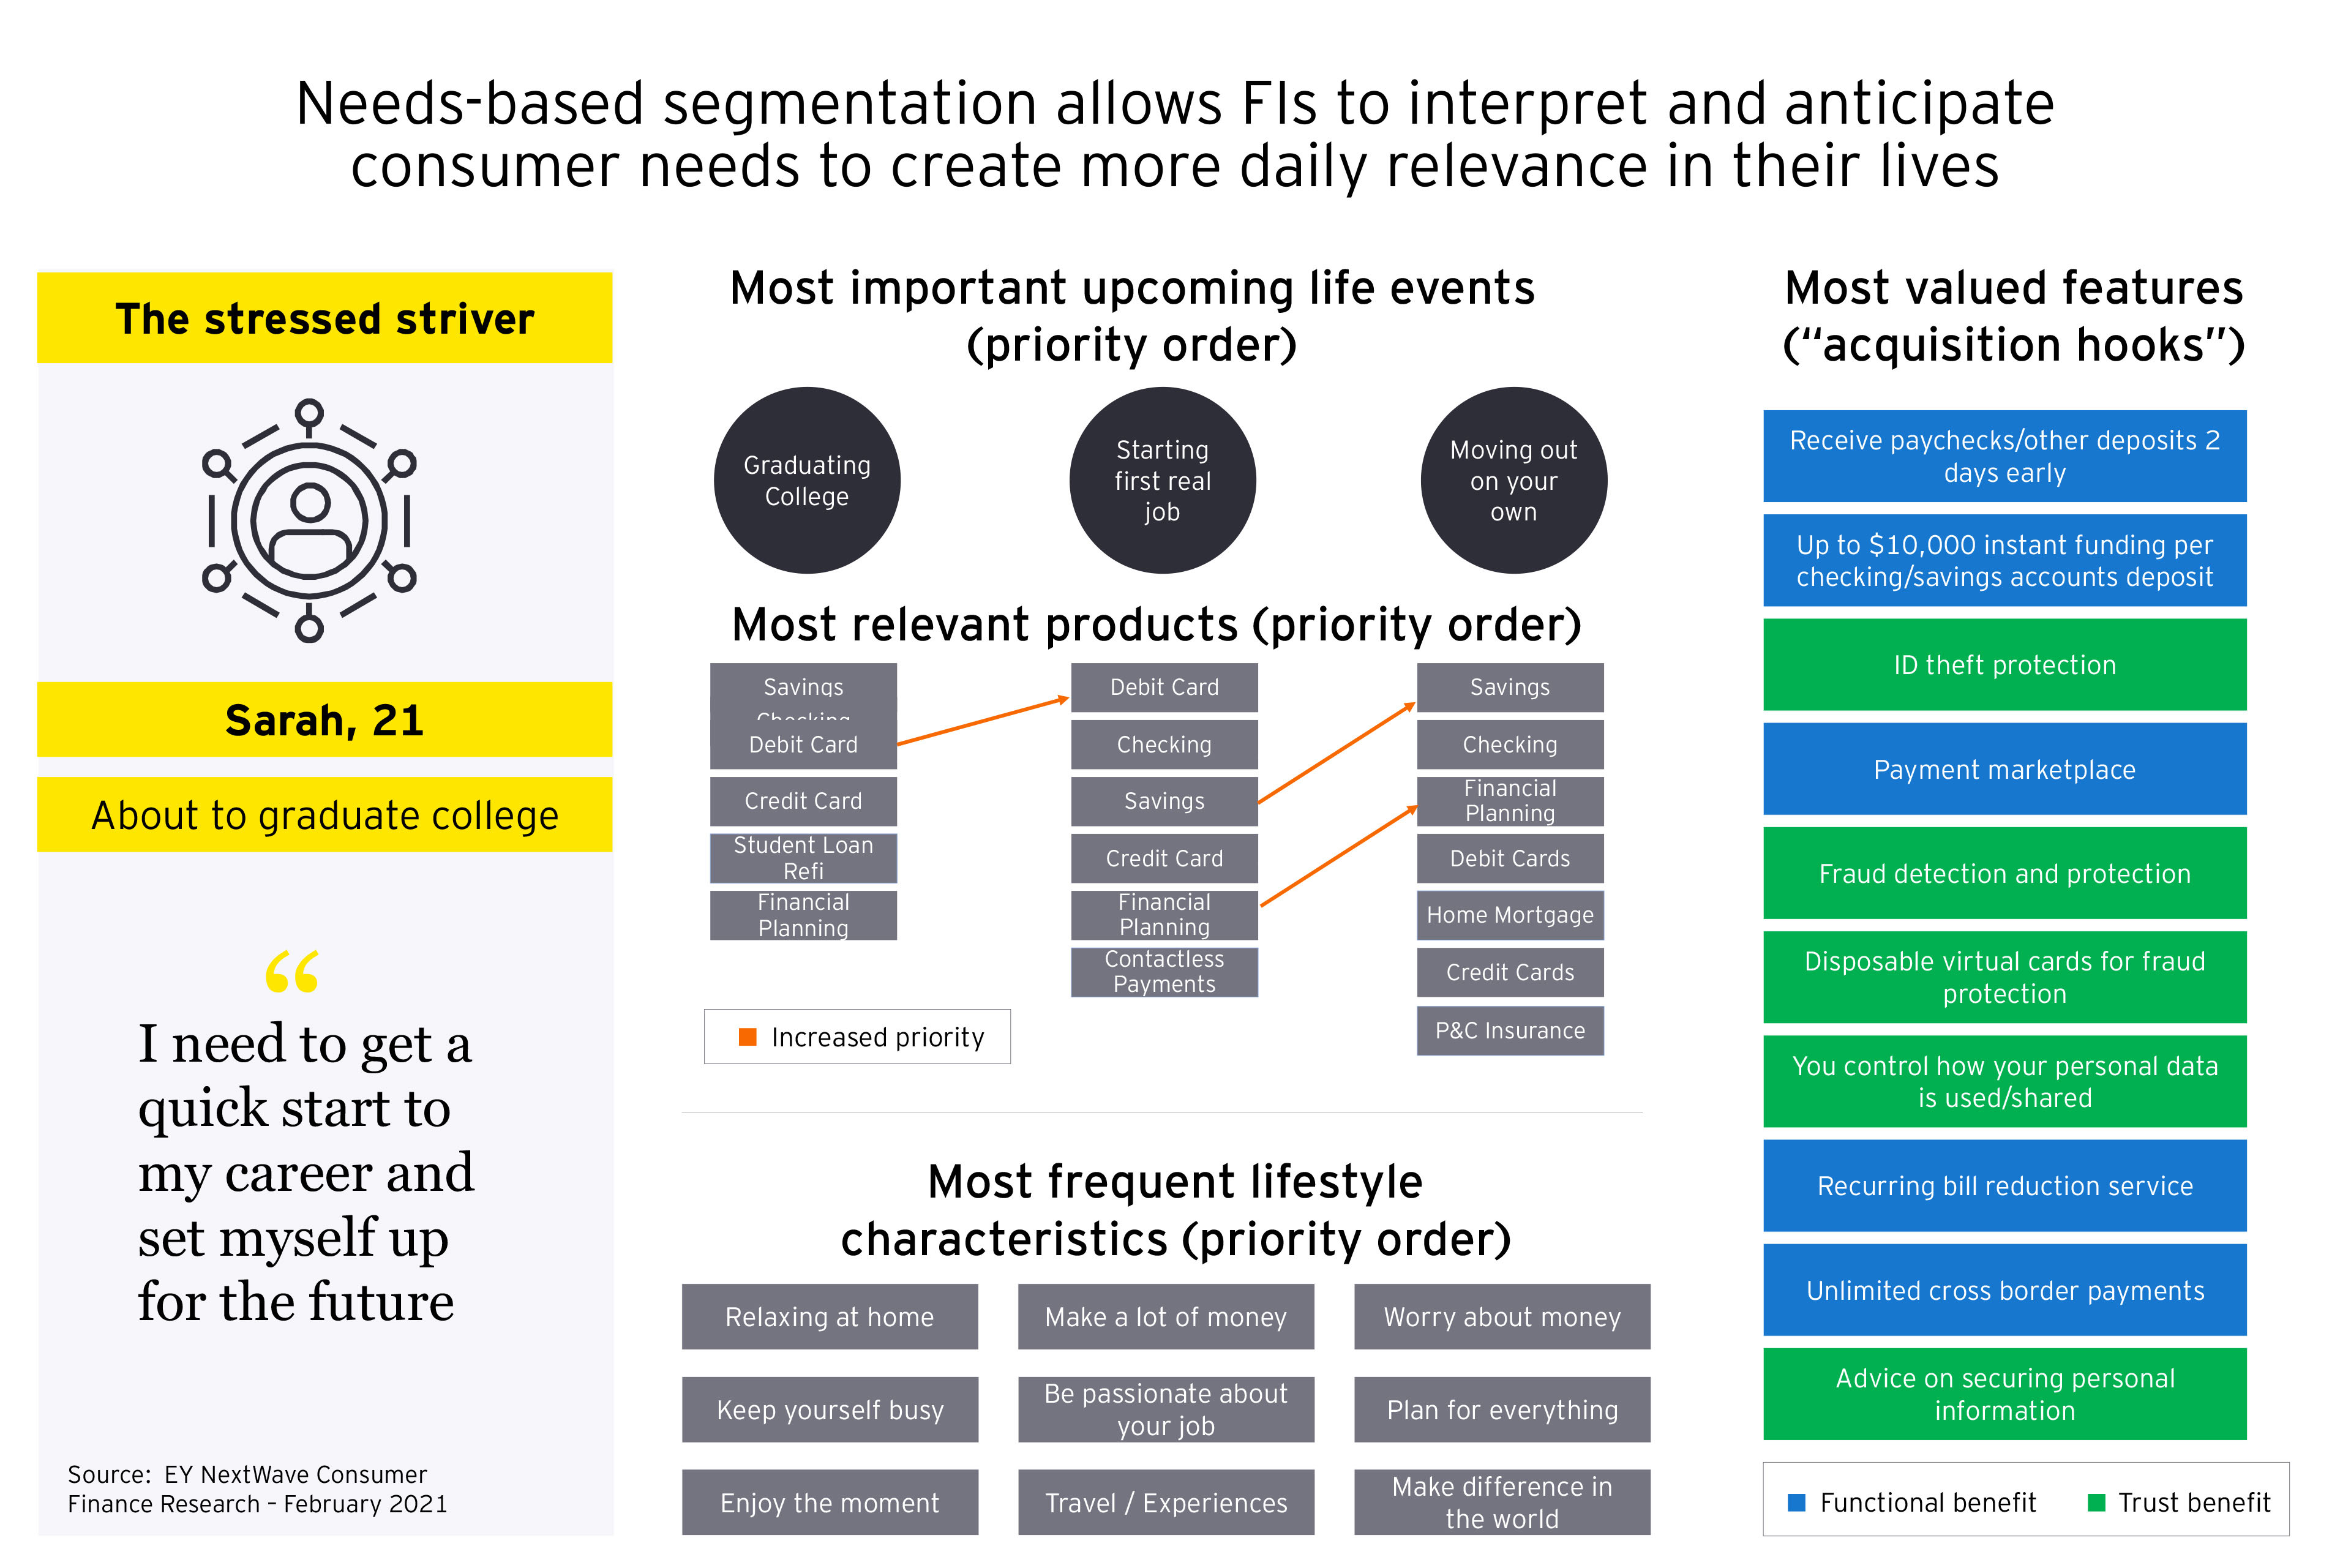 Chart of needs-based segmentation allows FIs to interpret and anticipate consumer needs